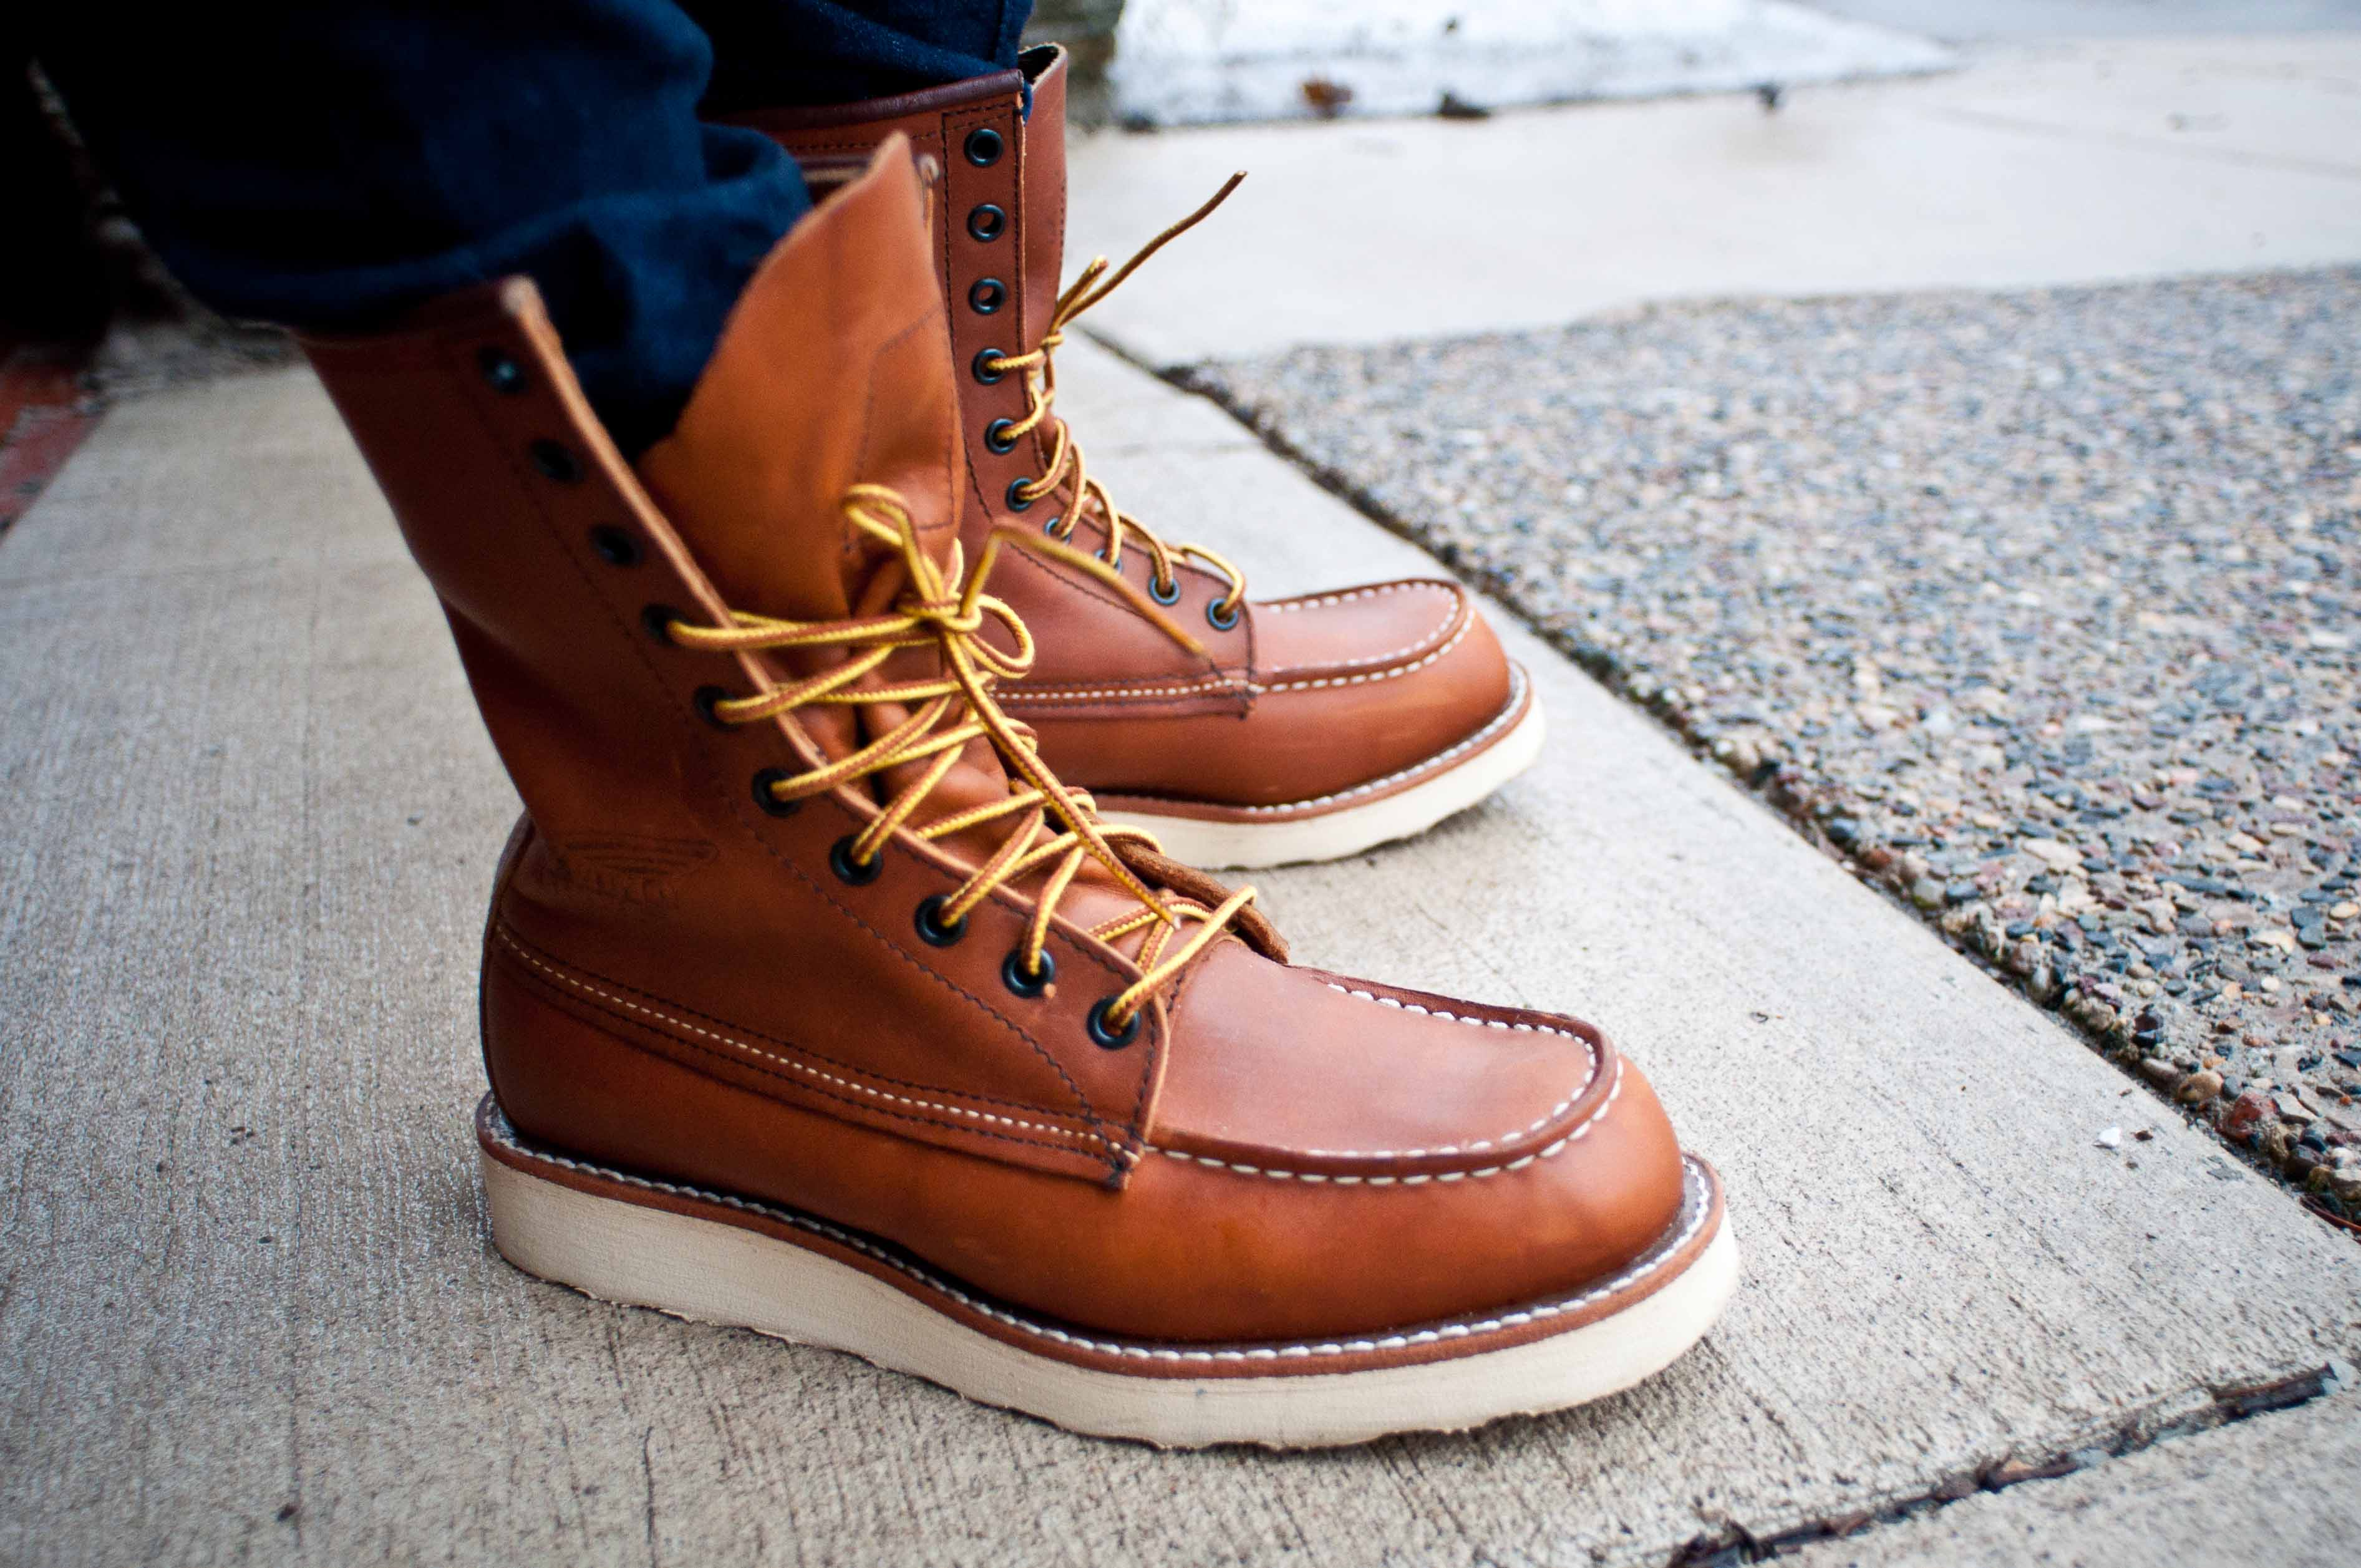 Red Wing Boots Prices vPHoWBmP